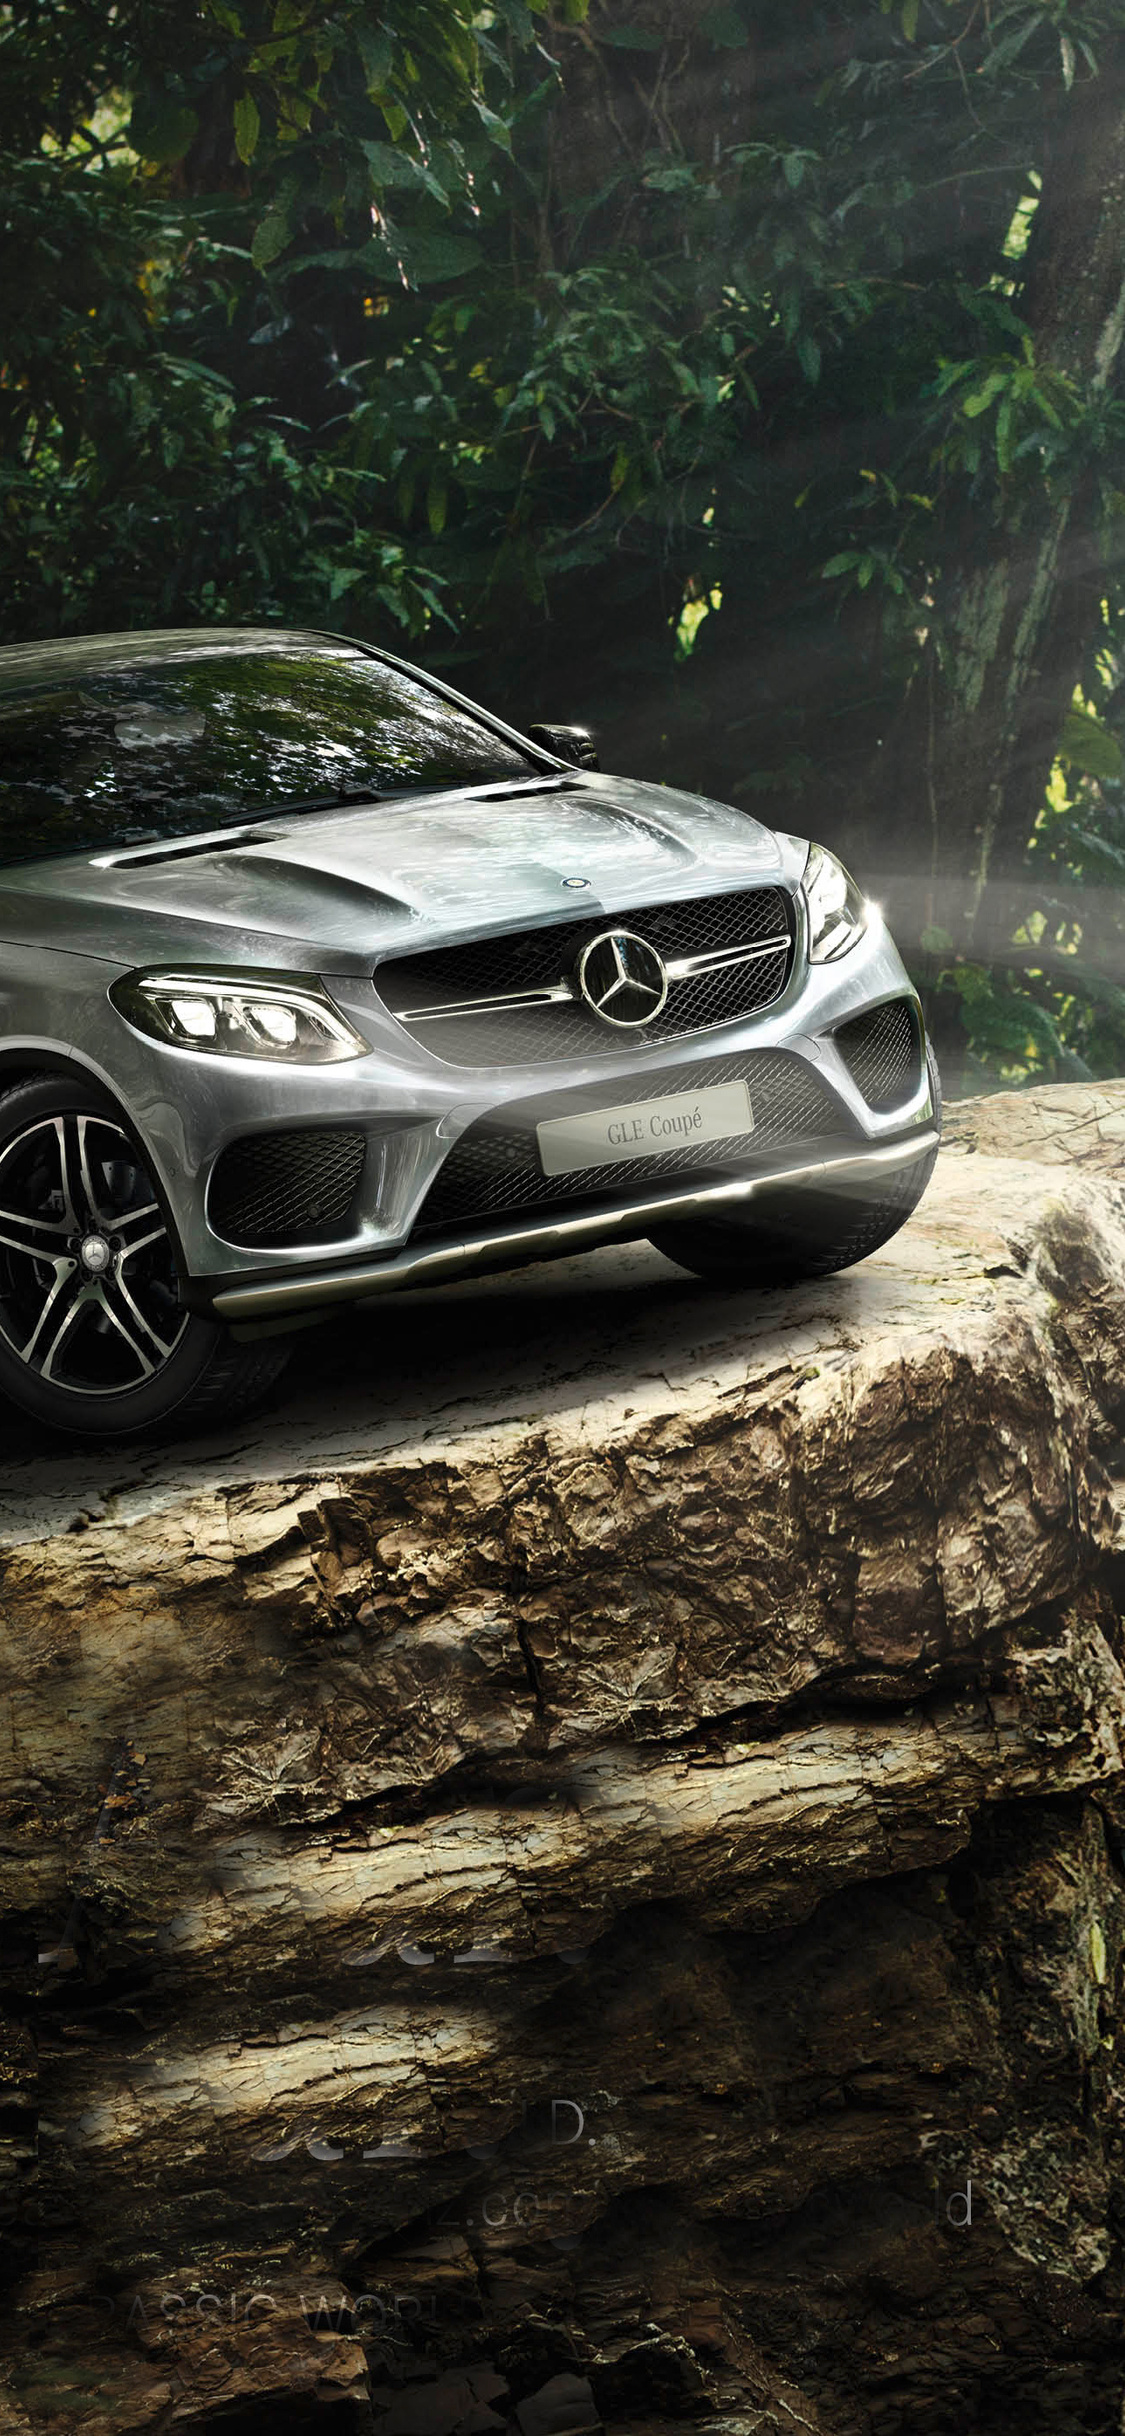 1125x2436 Mercedes Benz Gle Coupe Iphone Xs Iphone 10 Iphone X Hd 4k Wallpapers Images Backgrounds Photos And Pictures